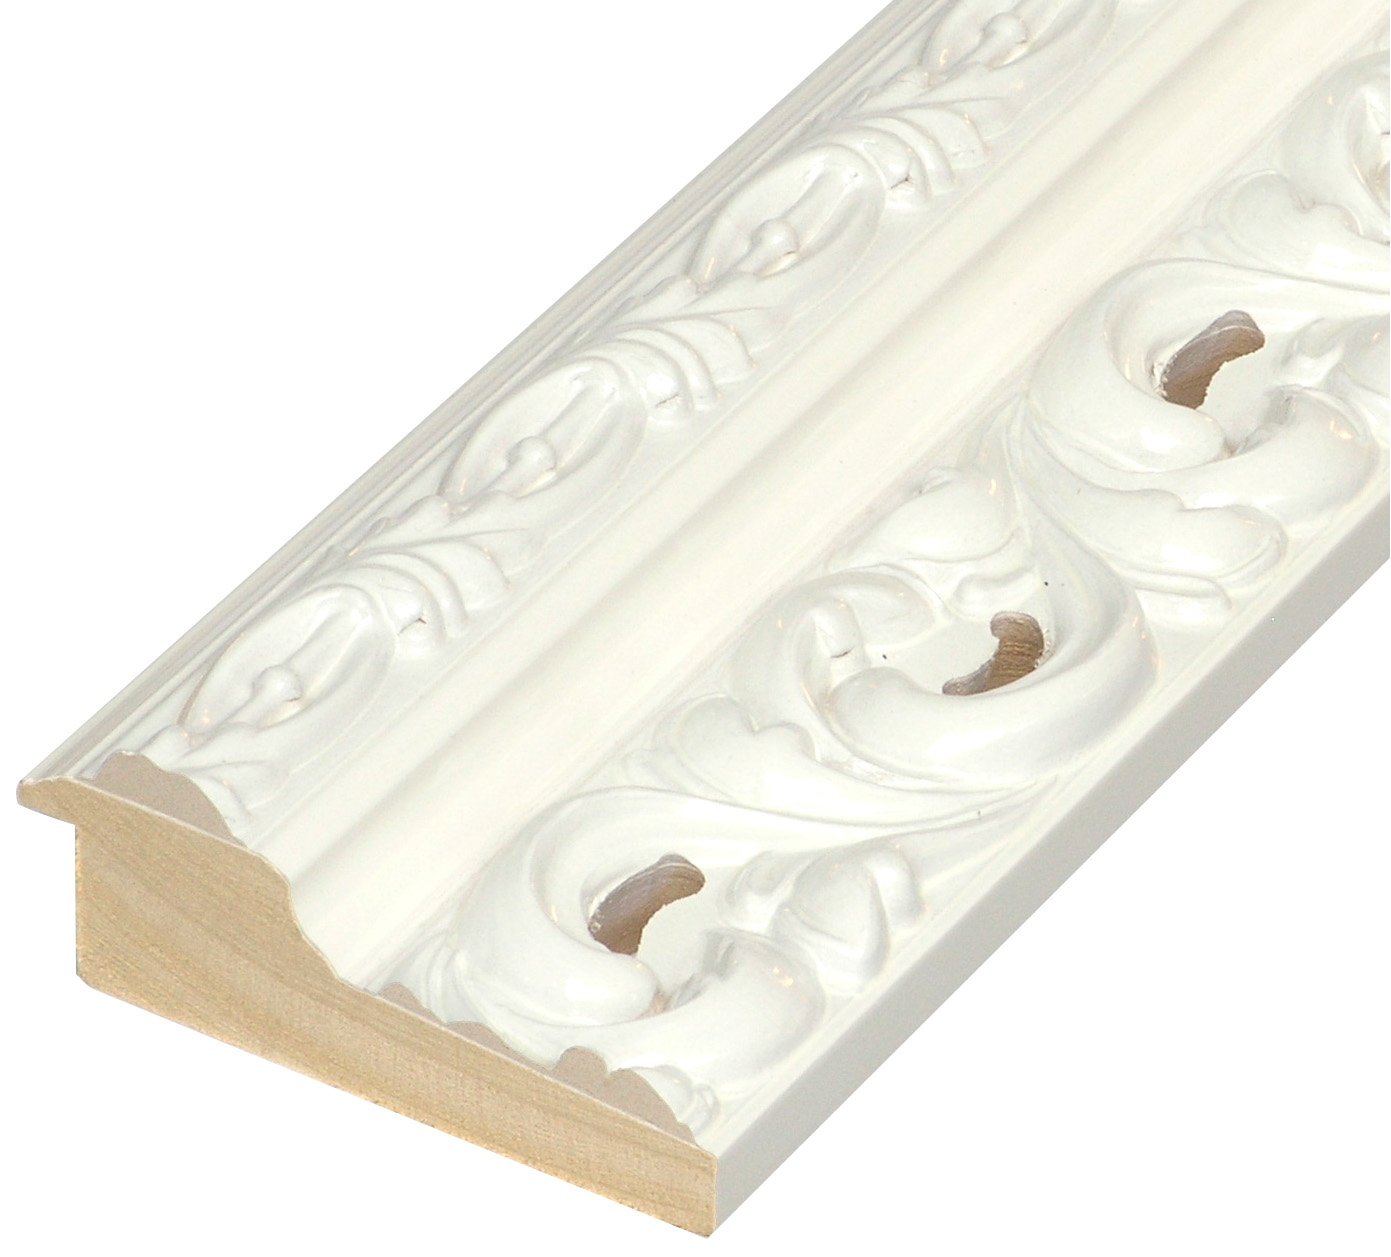 Moulding finger-joint pine Width 95mm - Glossy White